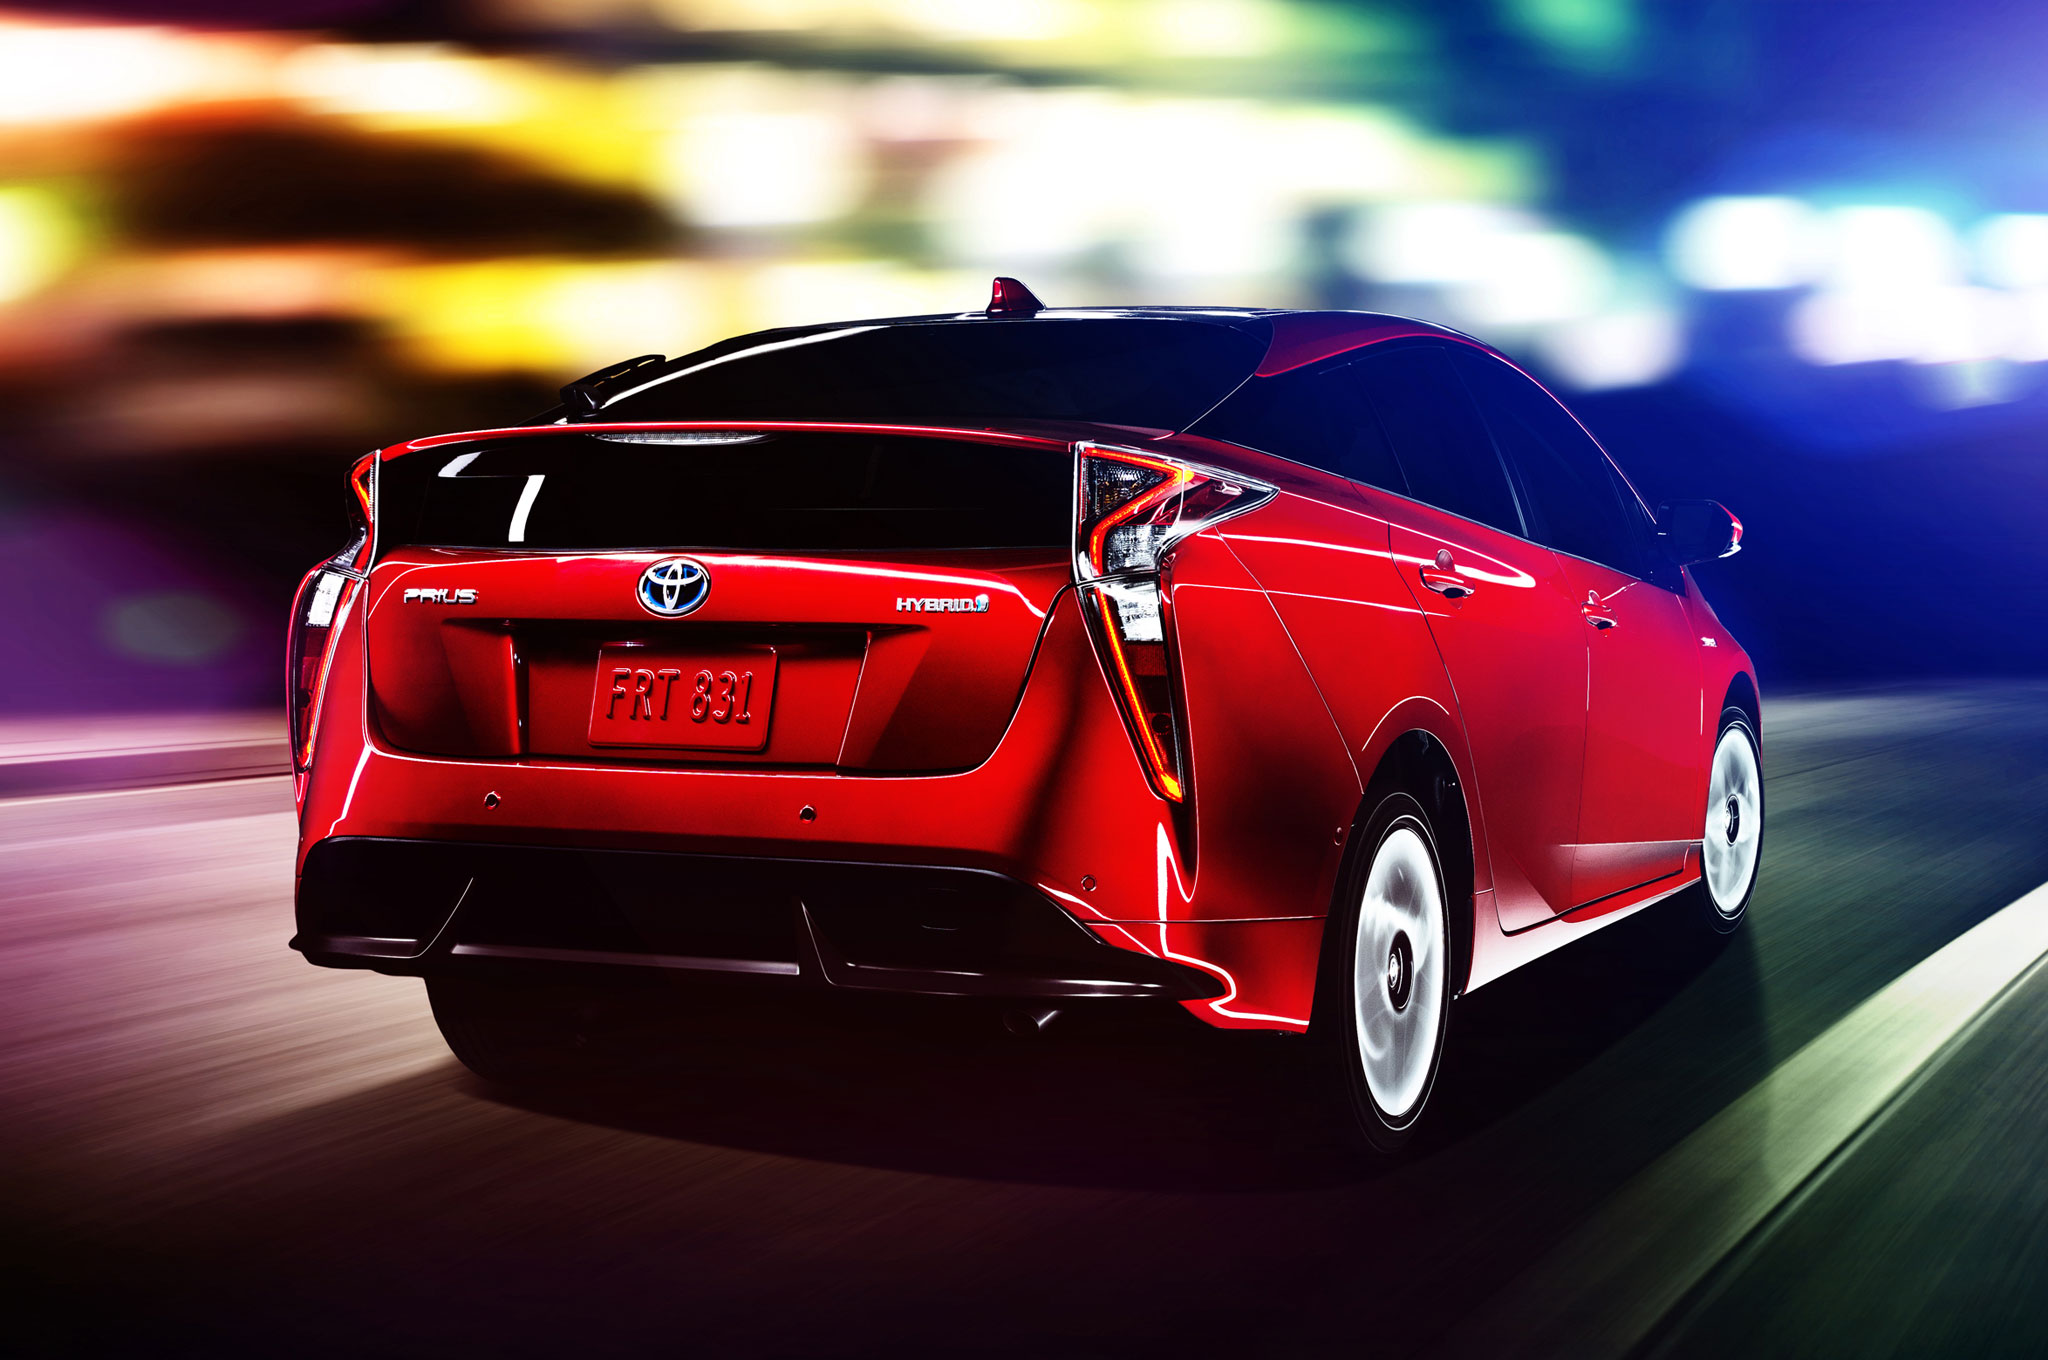 2016-toyota-prius-rear-view-in-motion